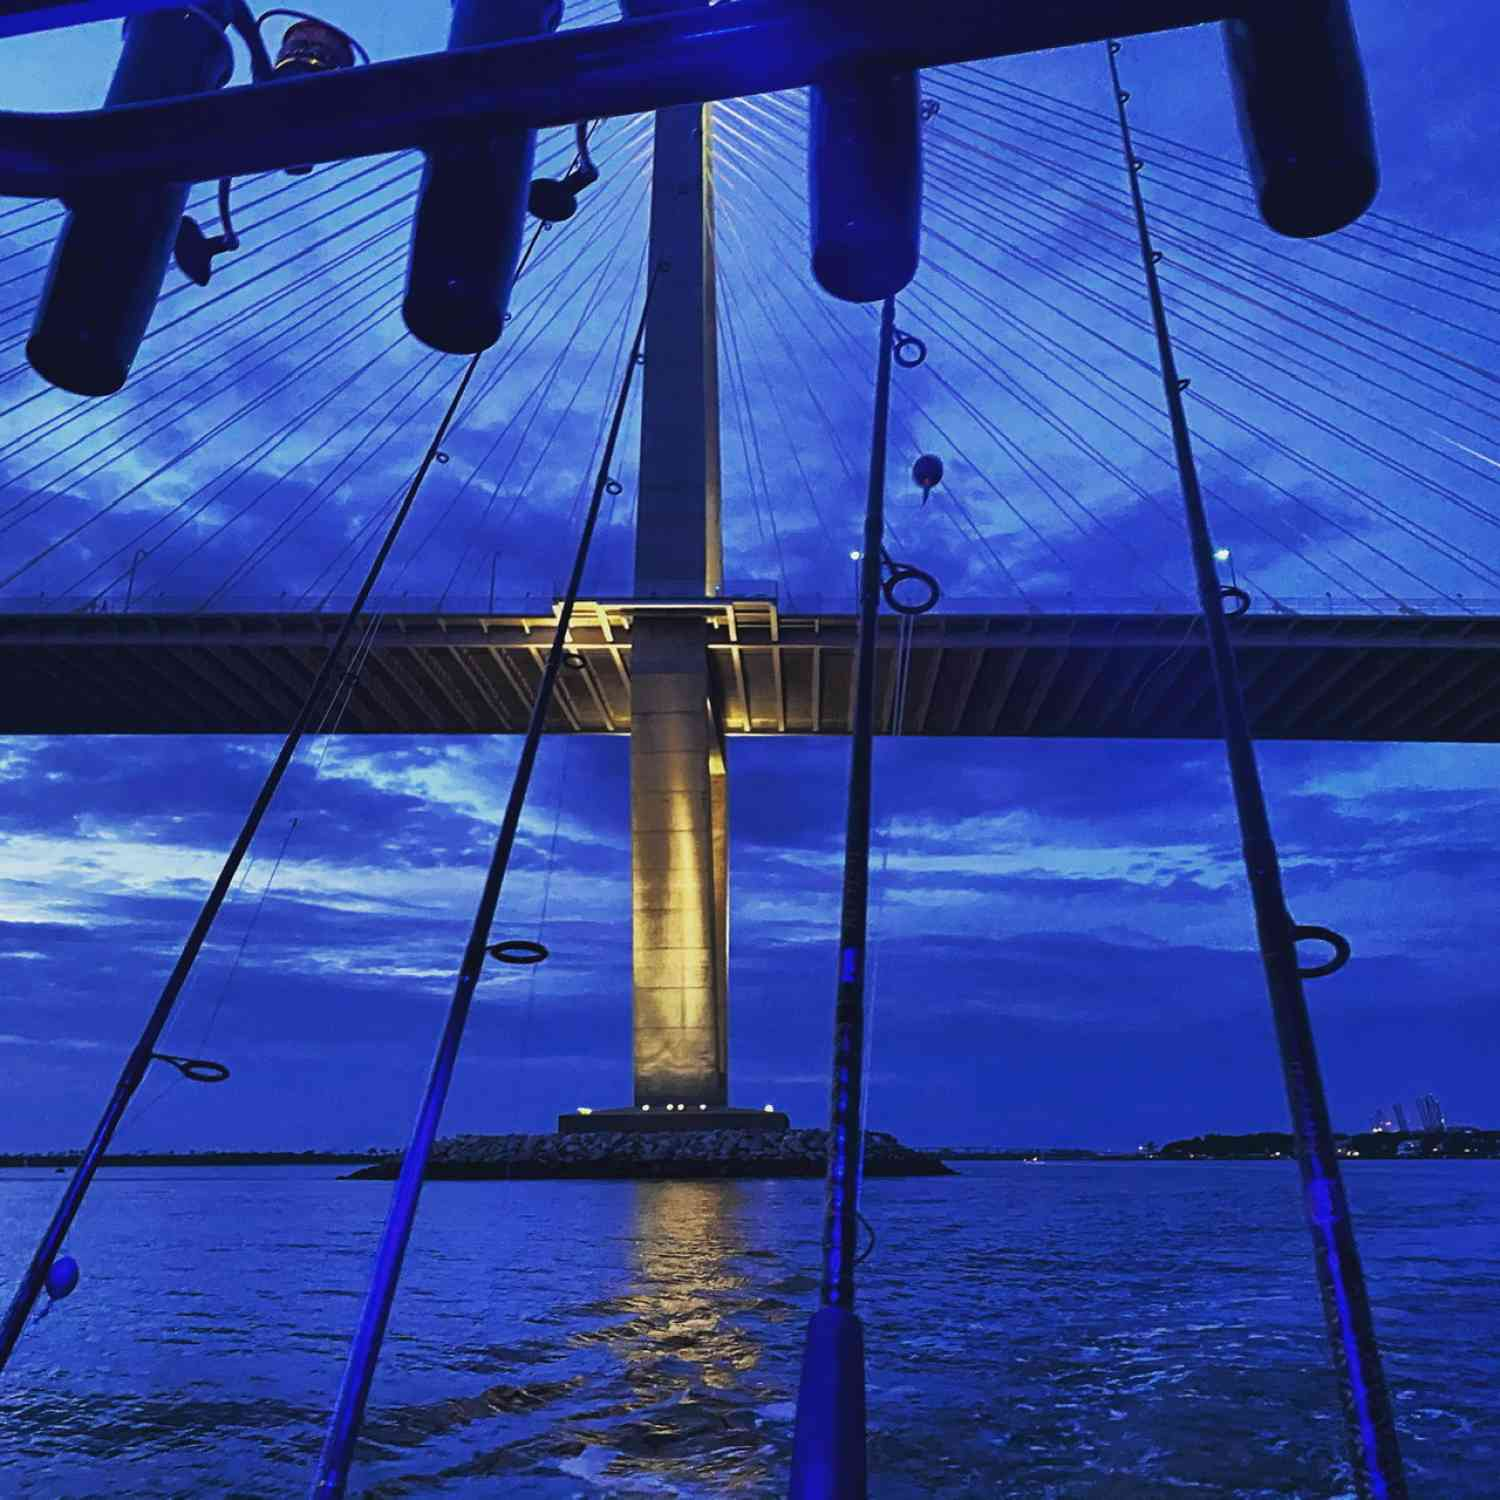 Title: Night fishing at the Ravenel - On board their Sportsman Heritage 231 Center Console - Location: Charleston harbor. Participating in the Photo Contest #SportsmanOctober2020